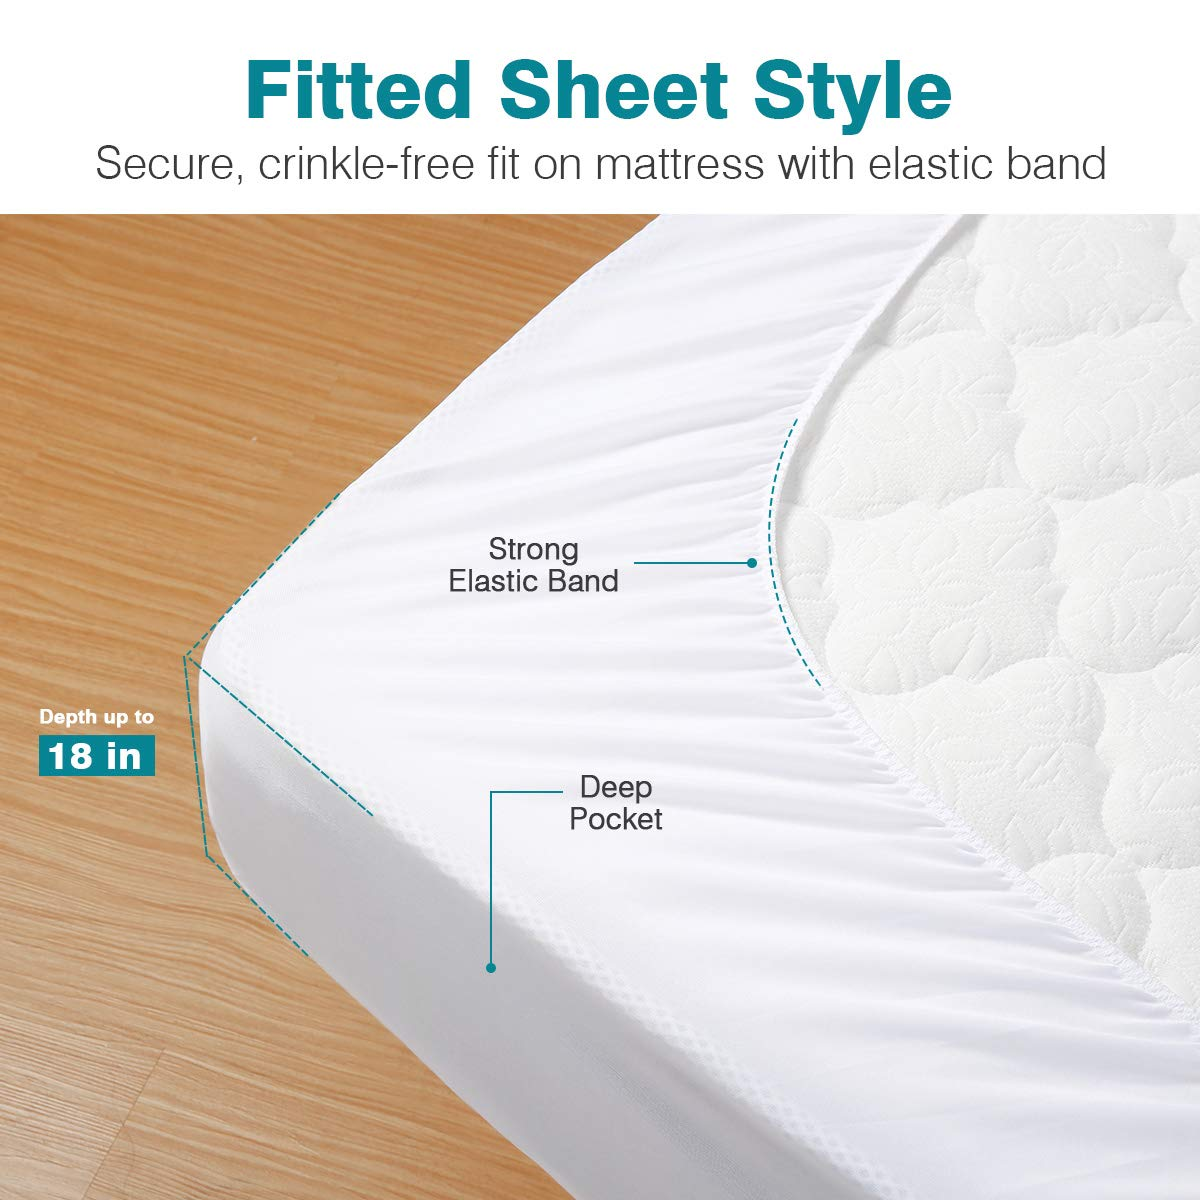 Docamor 100% Waterproof Mattress Protector, Hypoallergenic Mattress Cover with Premium Cotton Terry Surface - Vinyl Free - King Size - 3 Year Warranty by Docamor (Image #5)